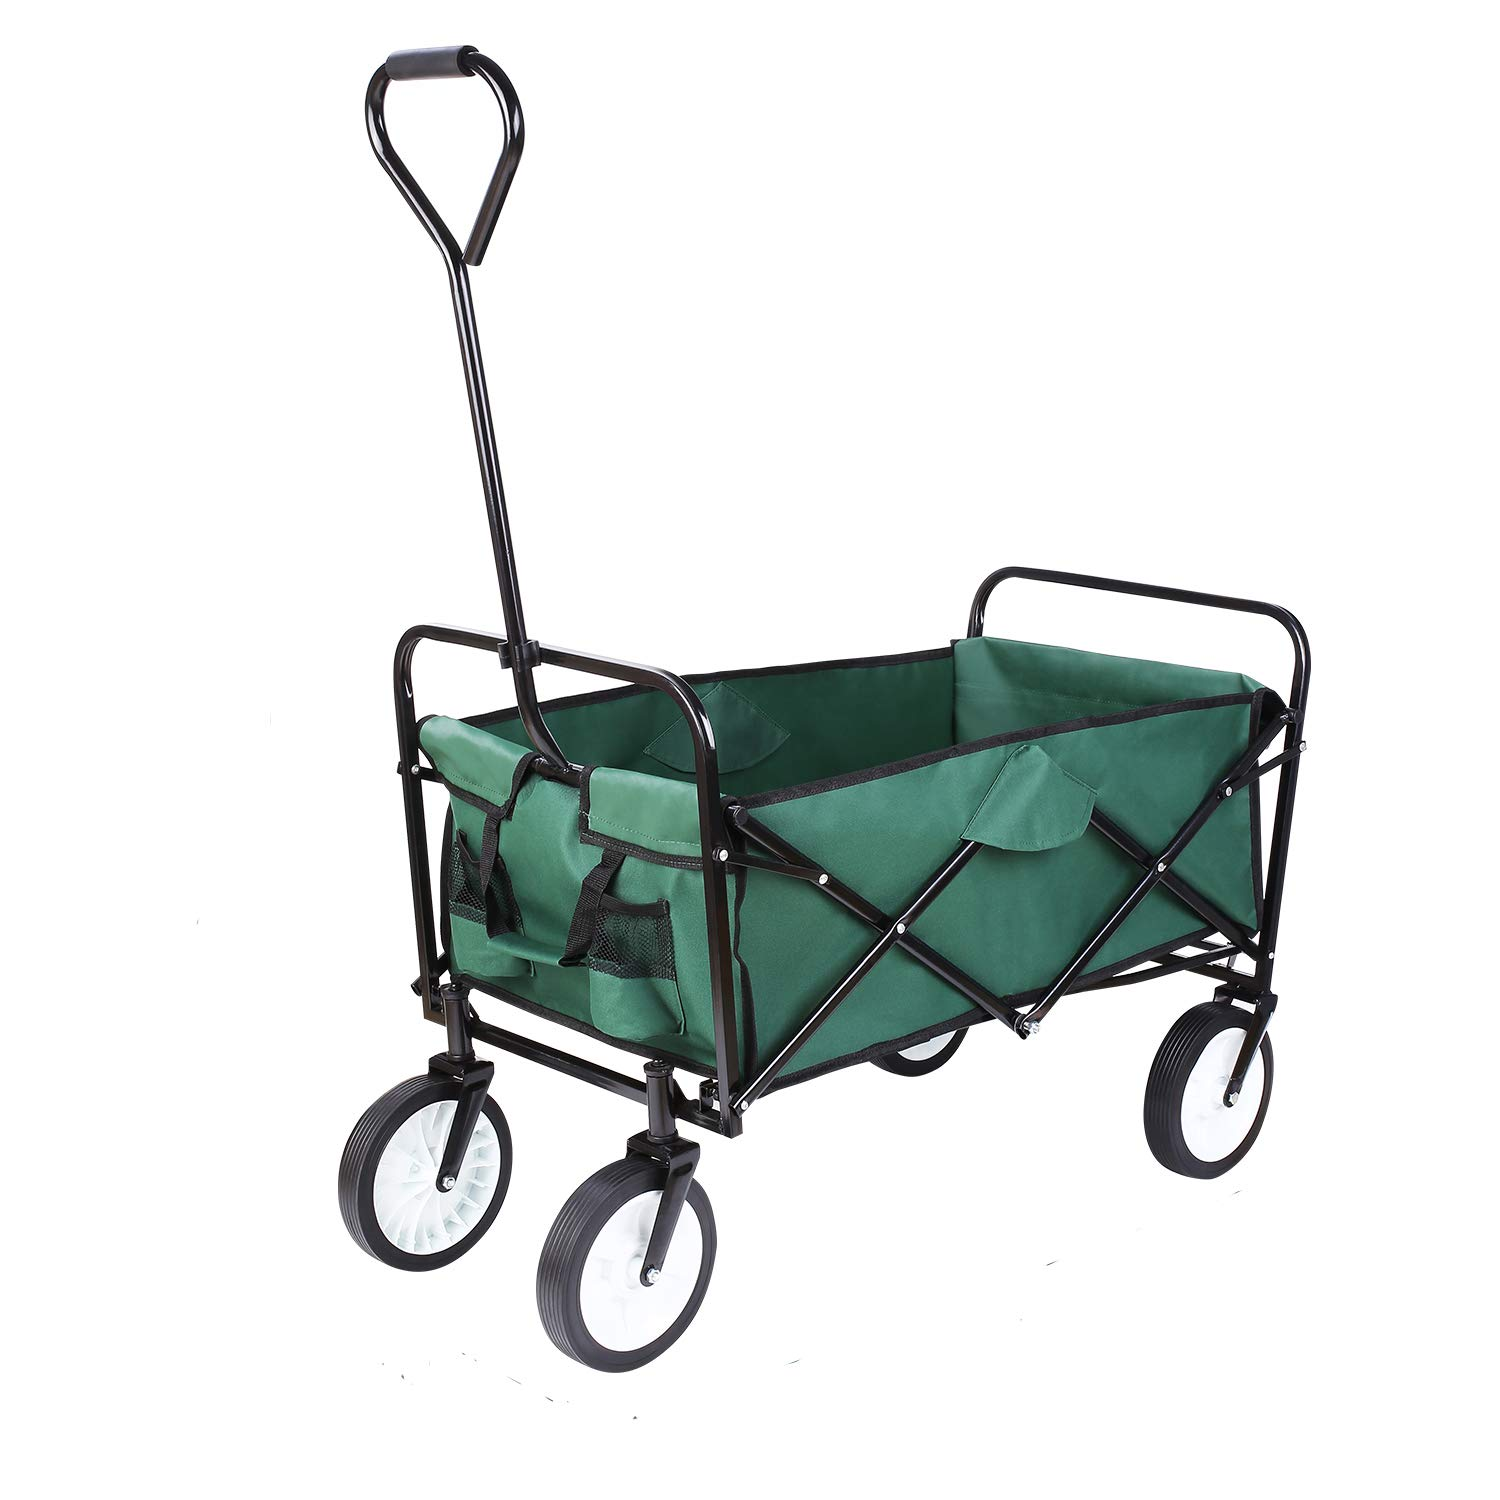 FIXKIT Collapsible Outdoor Utility Wagon, Folding Sturdy Garden Shopping Cart for Beach with All-Terrain Wheels, Blue Nifty Grower